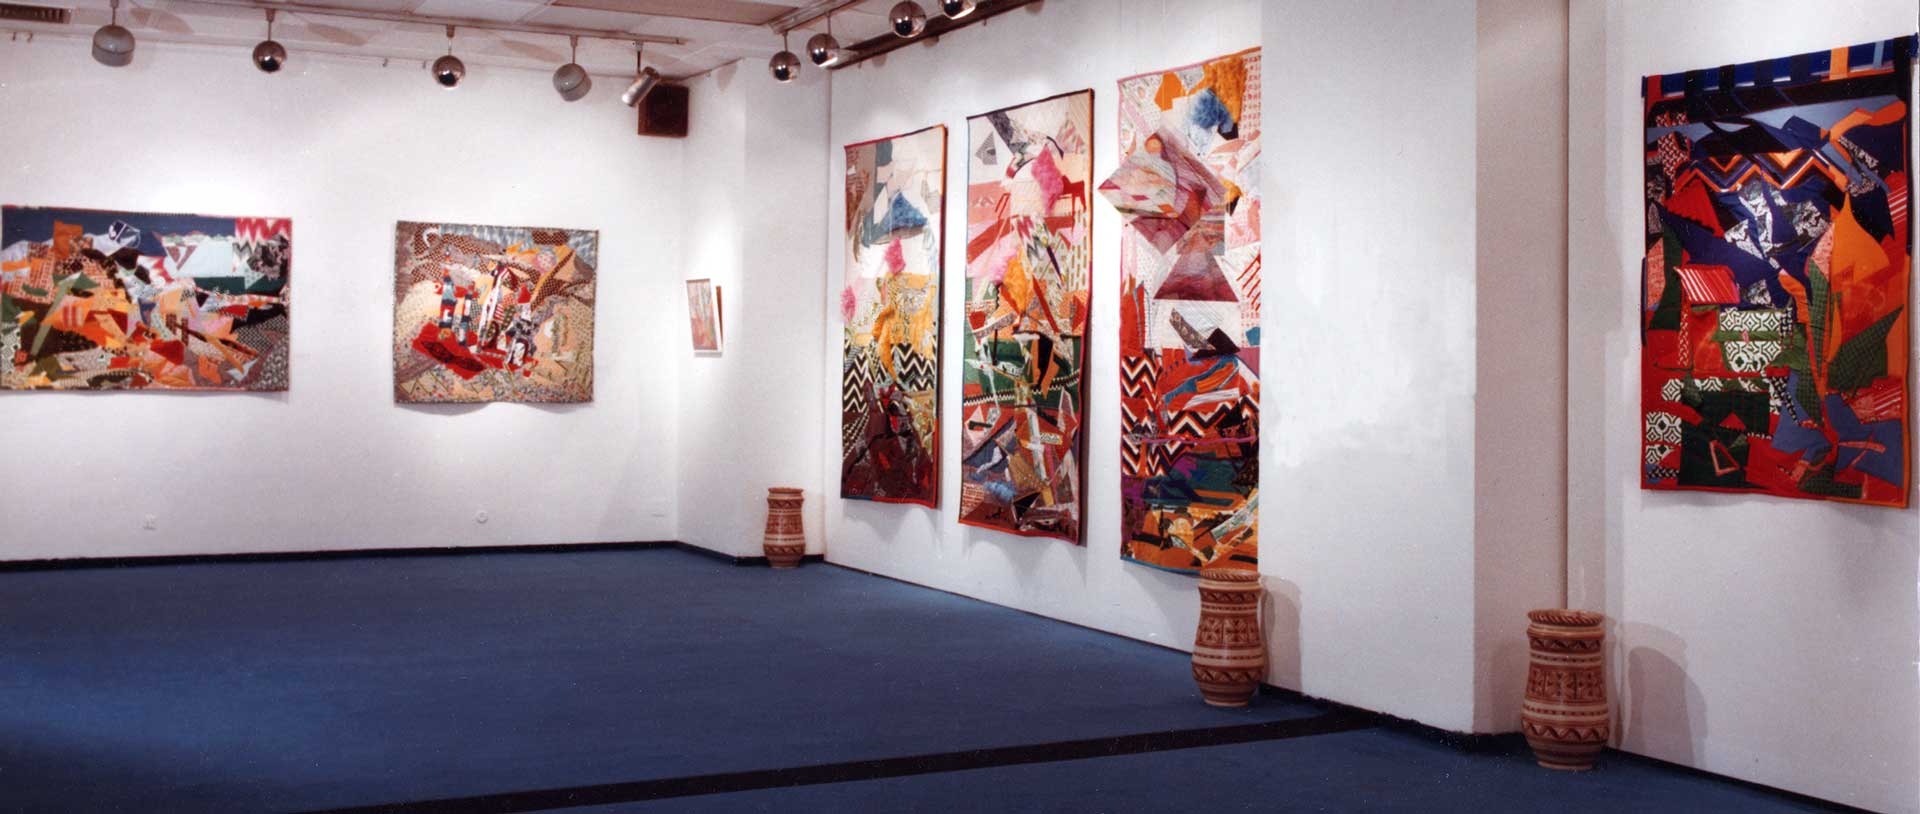 Installation photo of the exhibition